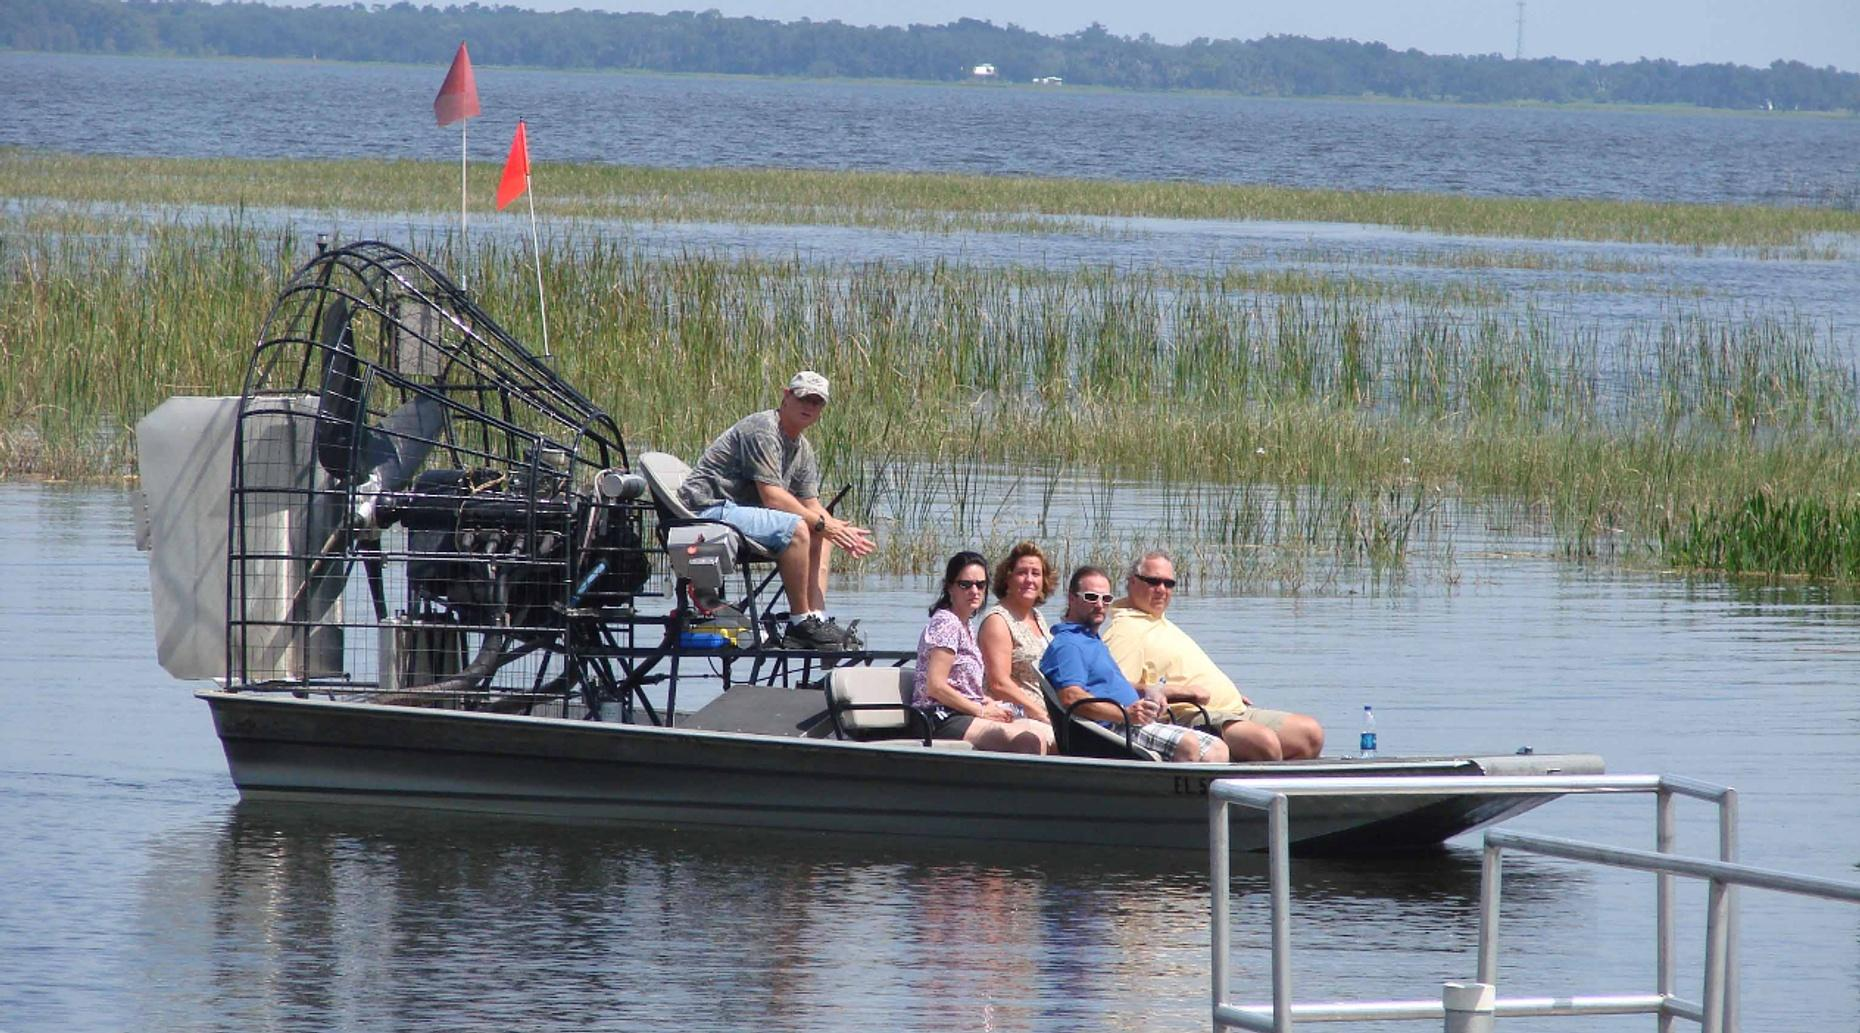 1-Hour Airboat Ride in Lake Jesup